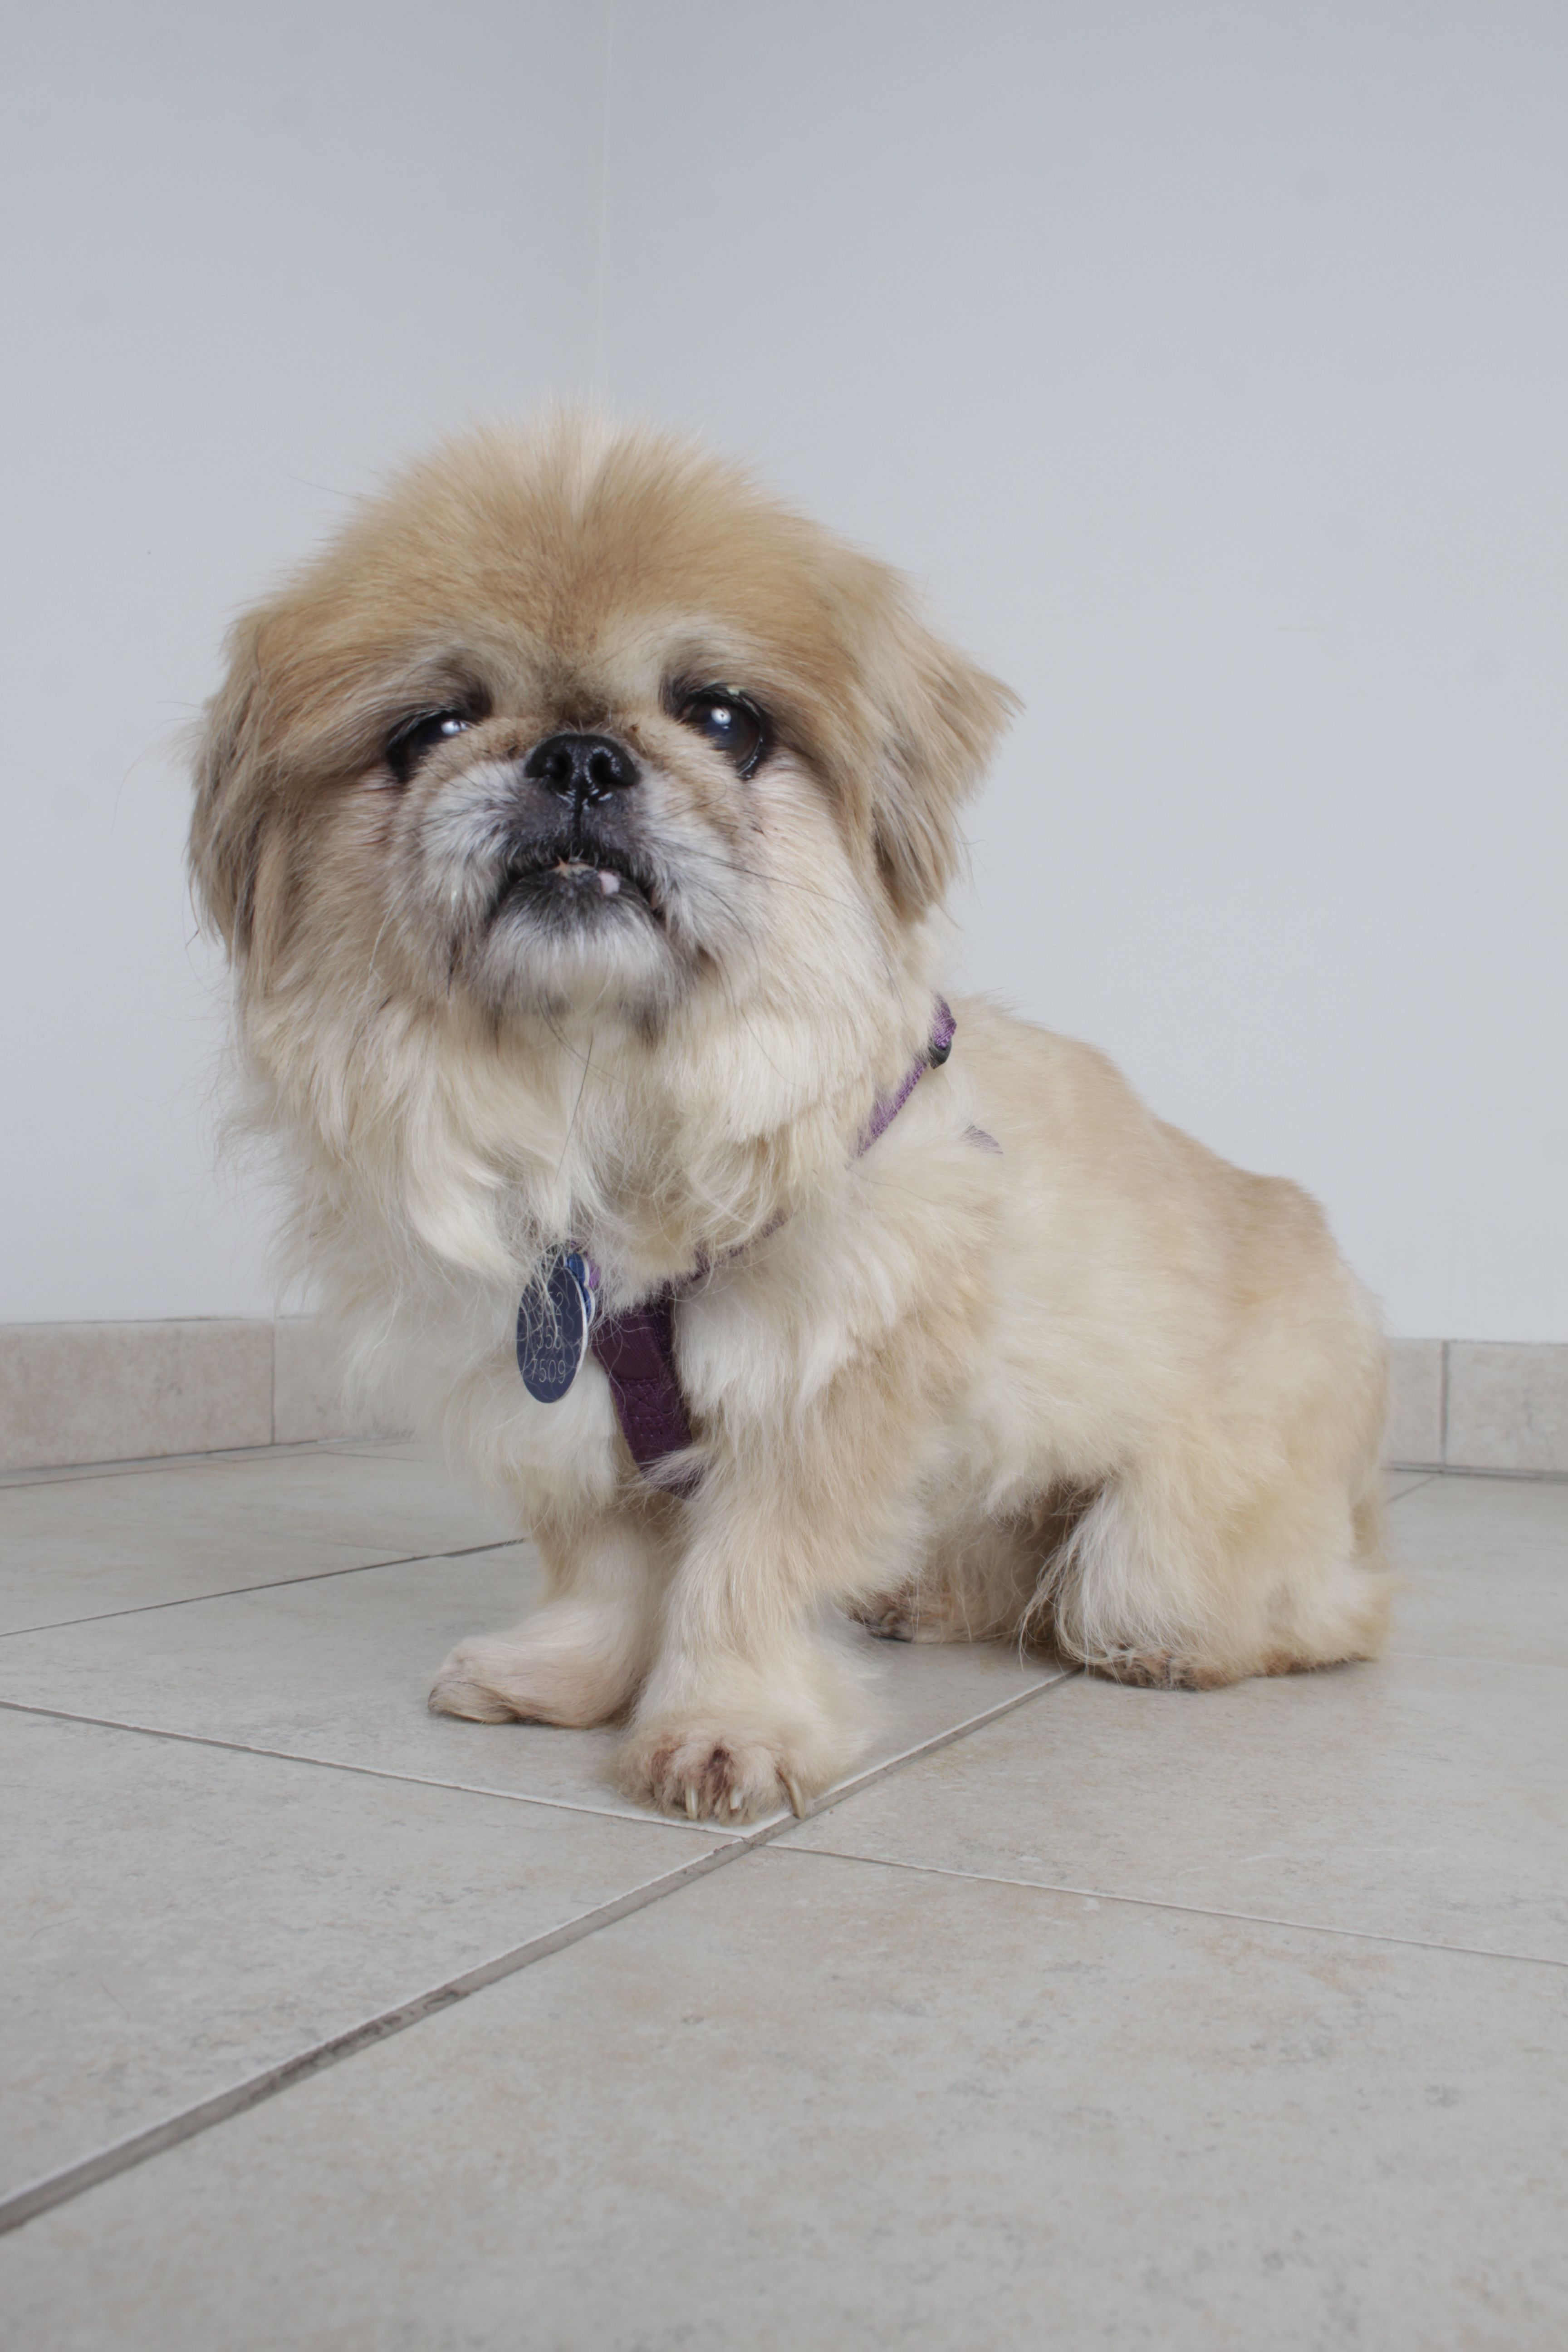 Pekingese Dog For Adoption In Eden Prairie Mn Adn 712313 On Puppyfinder Com Gender Female Age Senior Dog Adoption Pekingese Dogs Pekingese